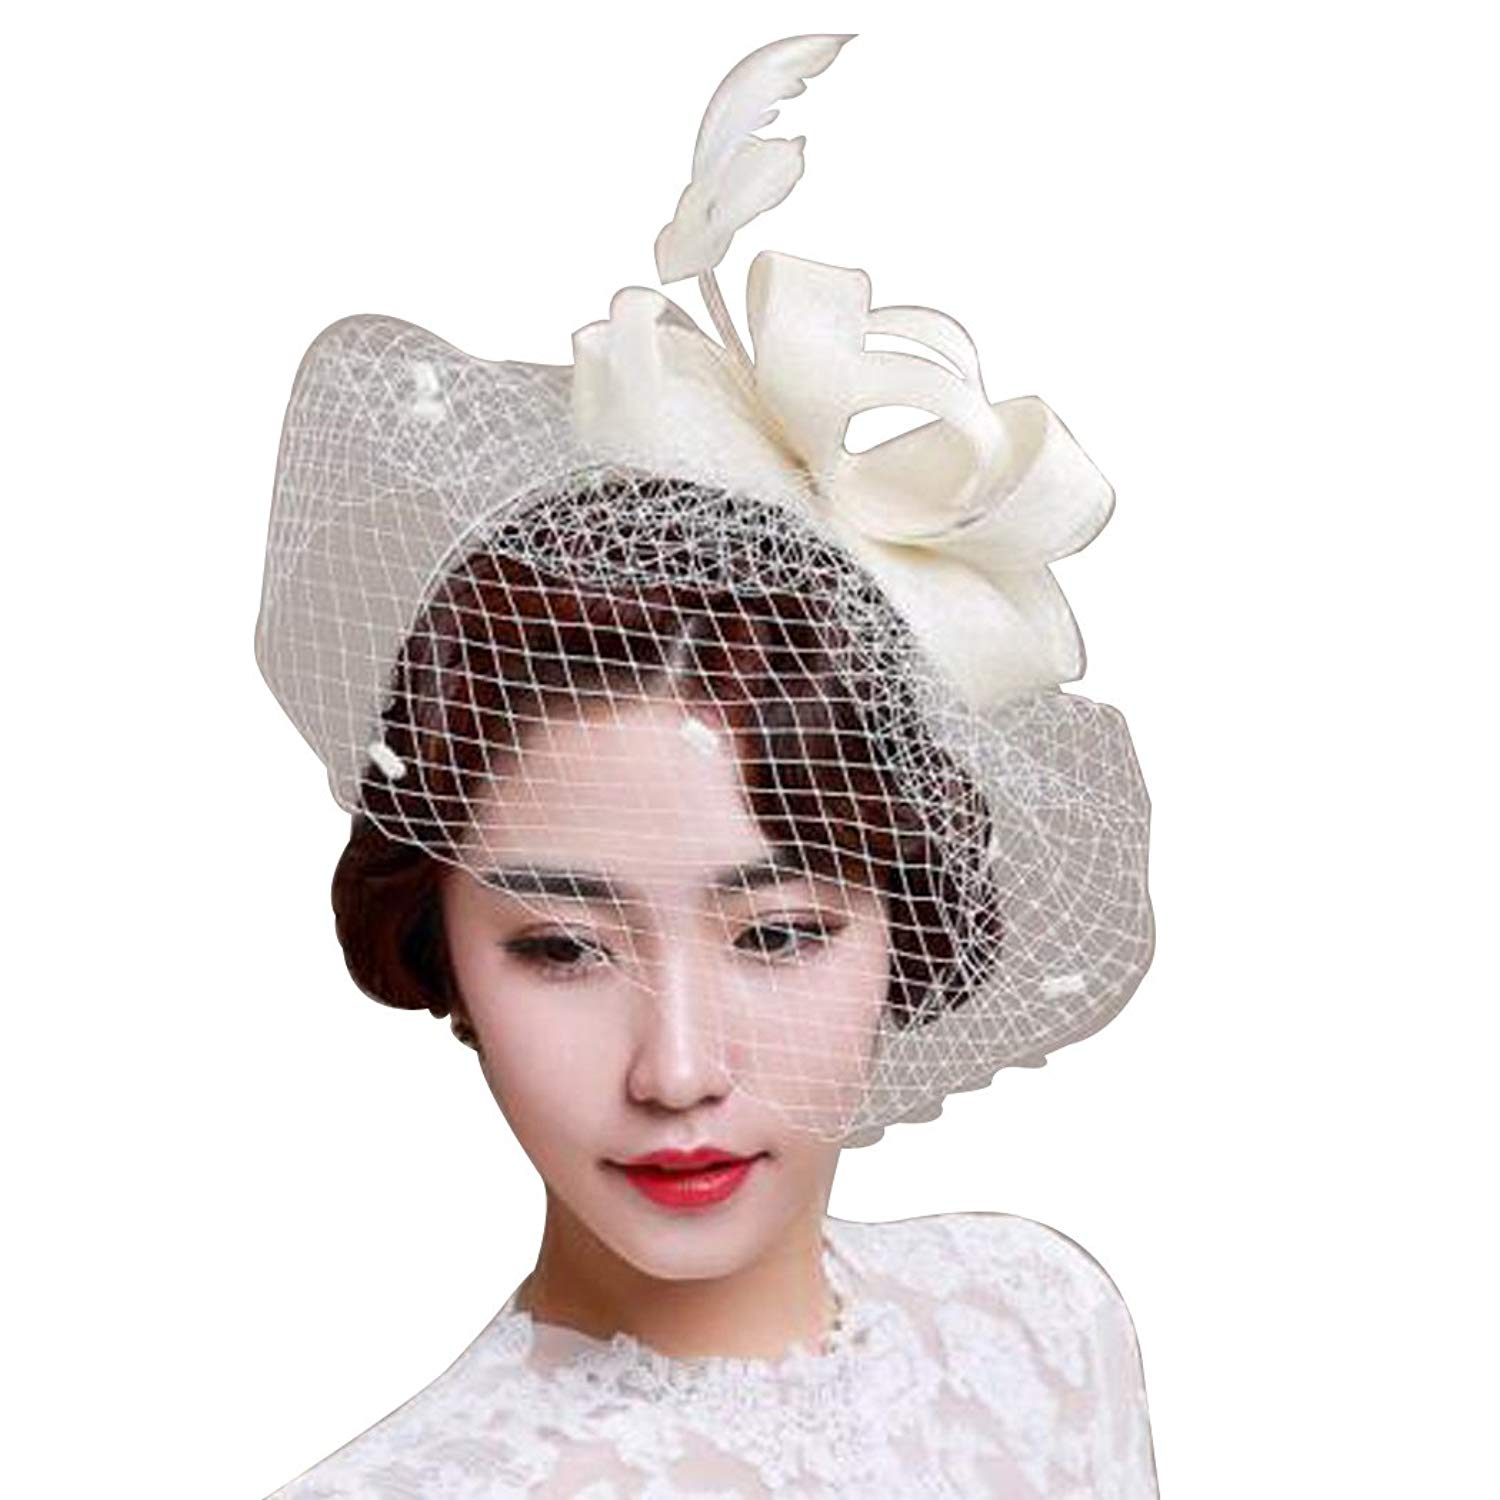 a00e1413 Get Quotations · Dovaly Womens Fascinators Hat Bridal Black White Feather Party  Headdress with Veil